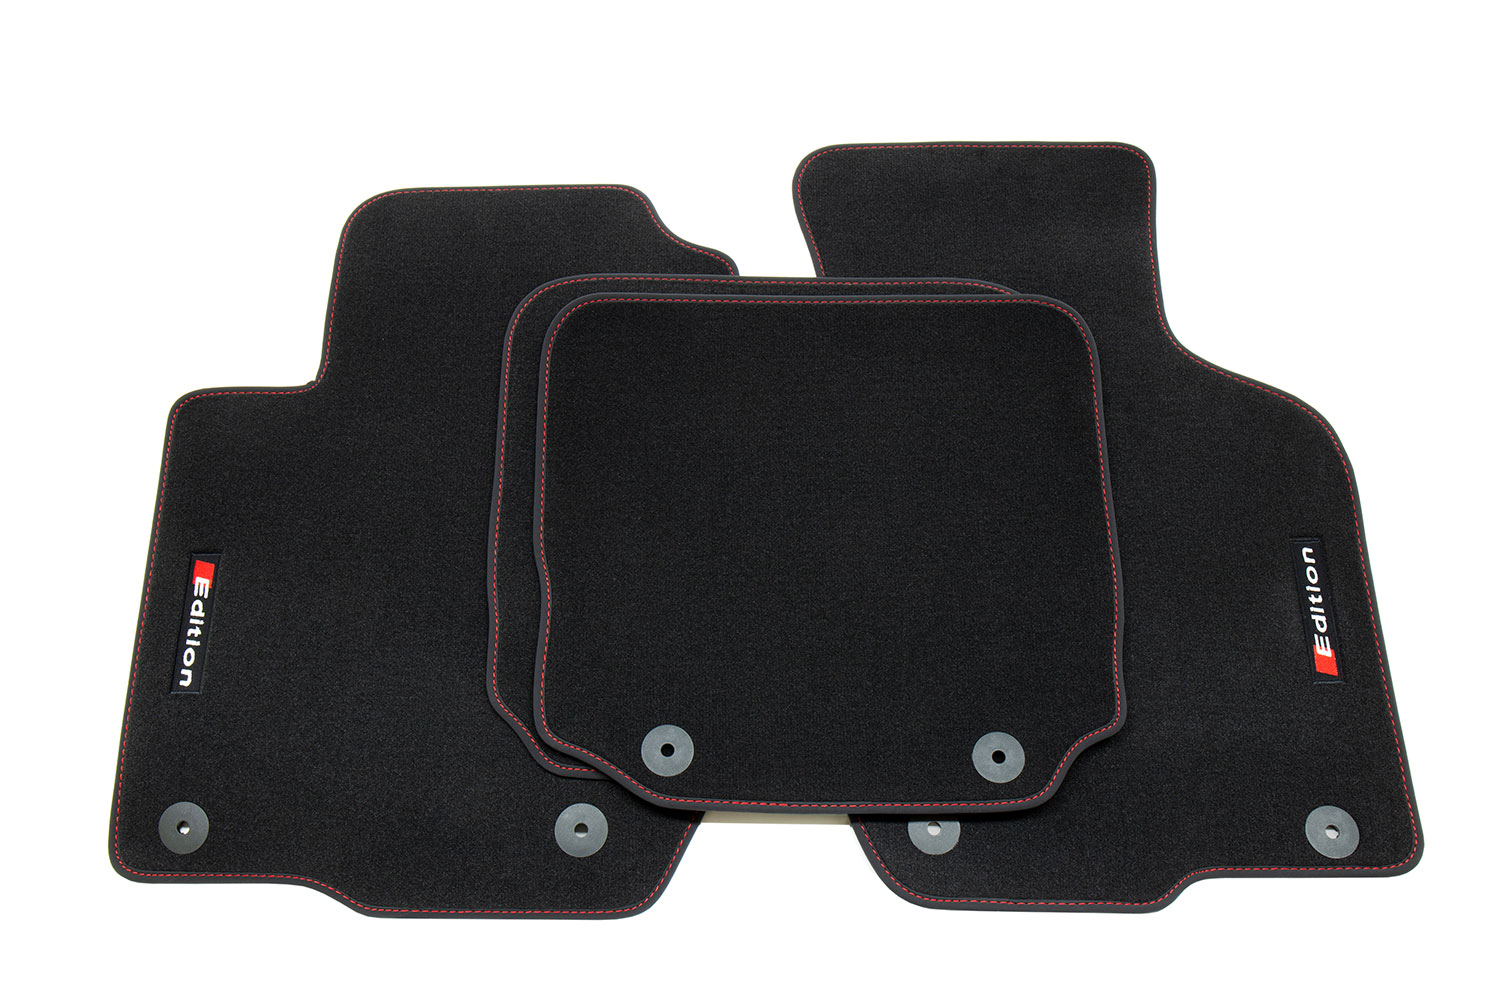 Edition Floor Mats Fits For S Line S3 A3 8l 1996 2003 Lhd Only